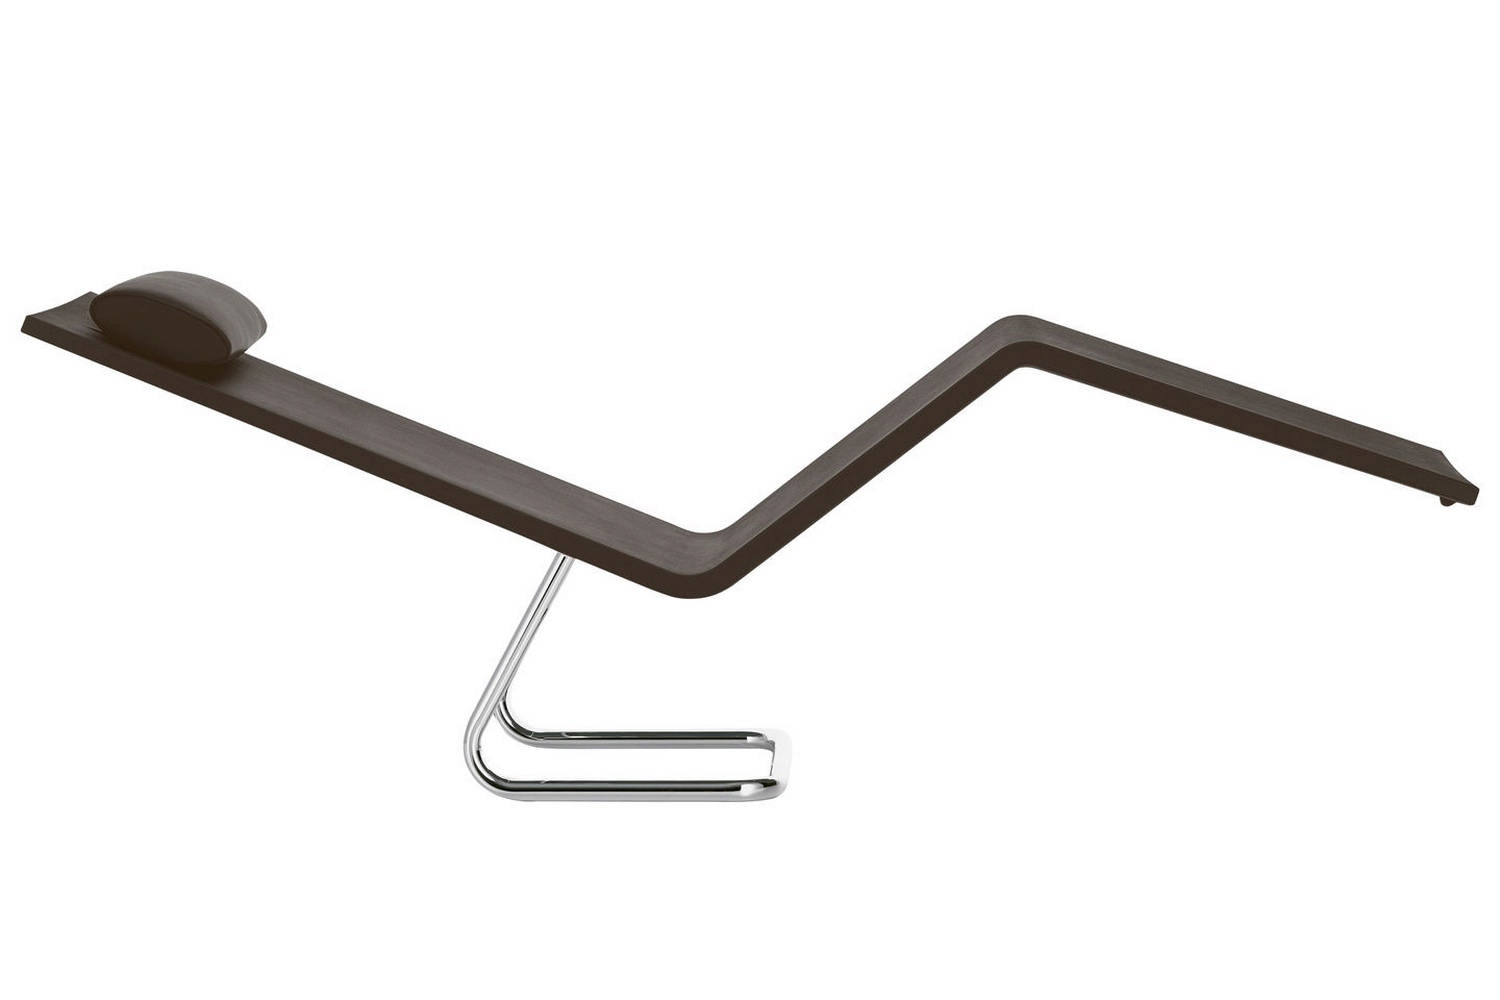 MVS Chaise by Maarten van Severen for Vitra